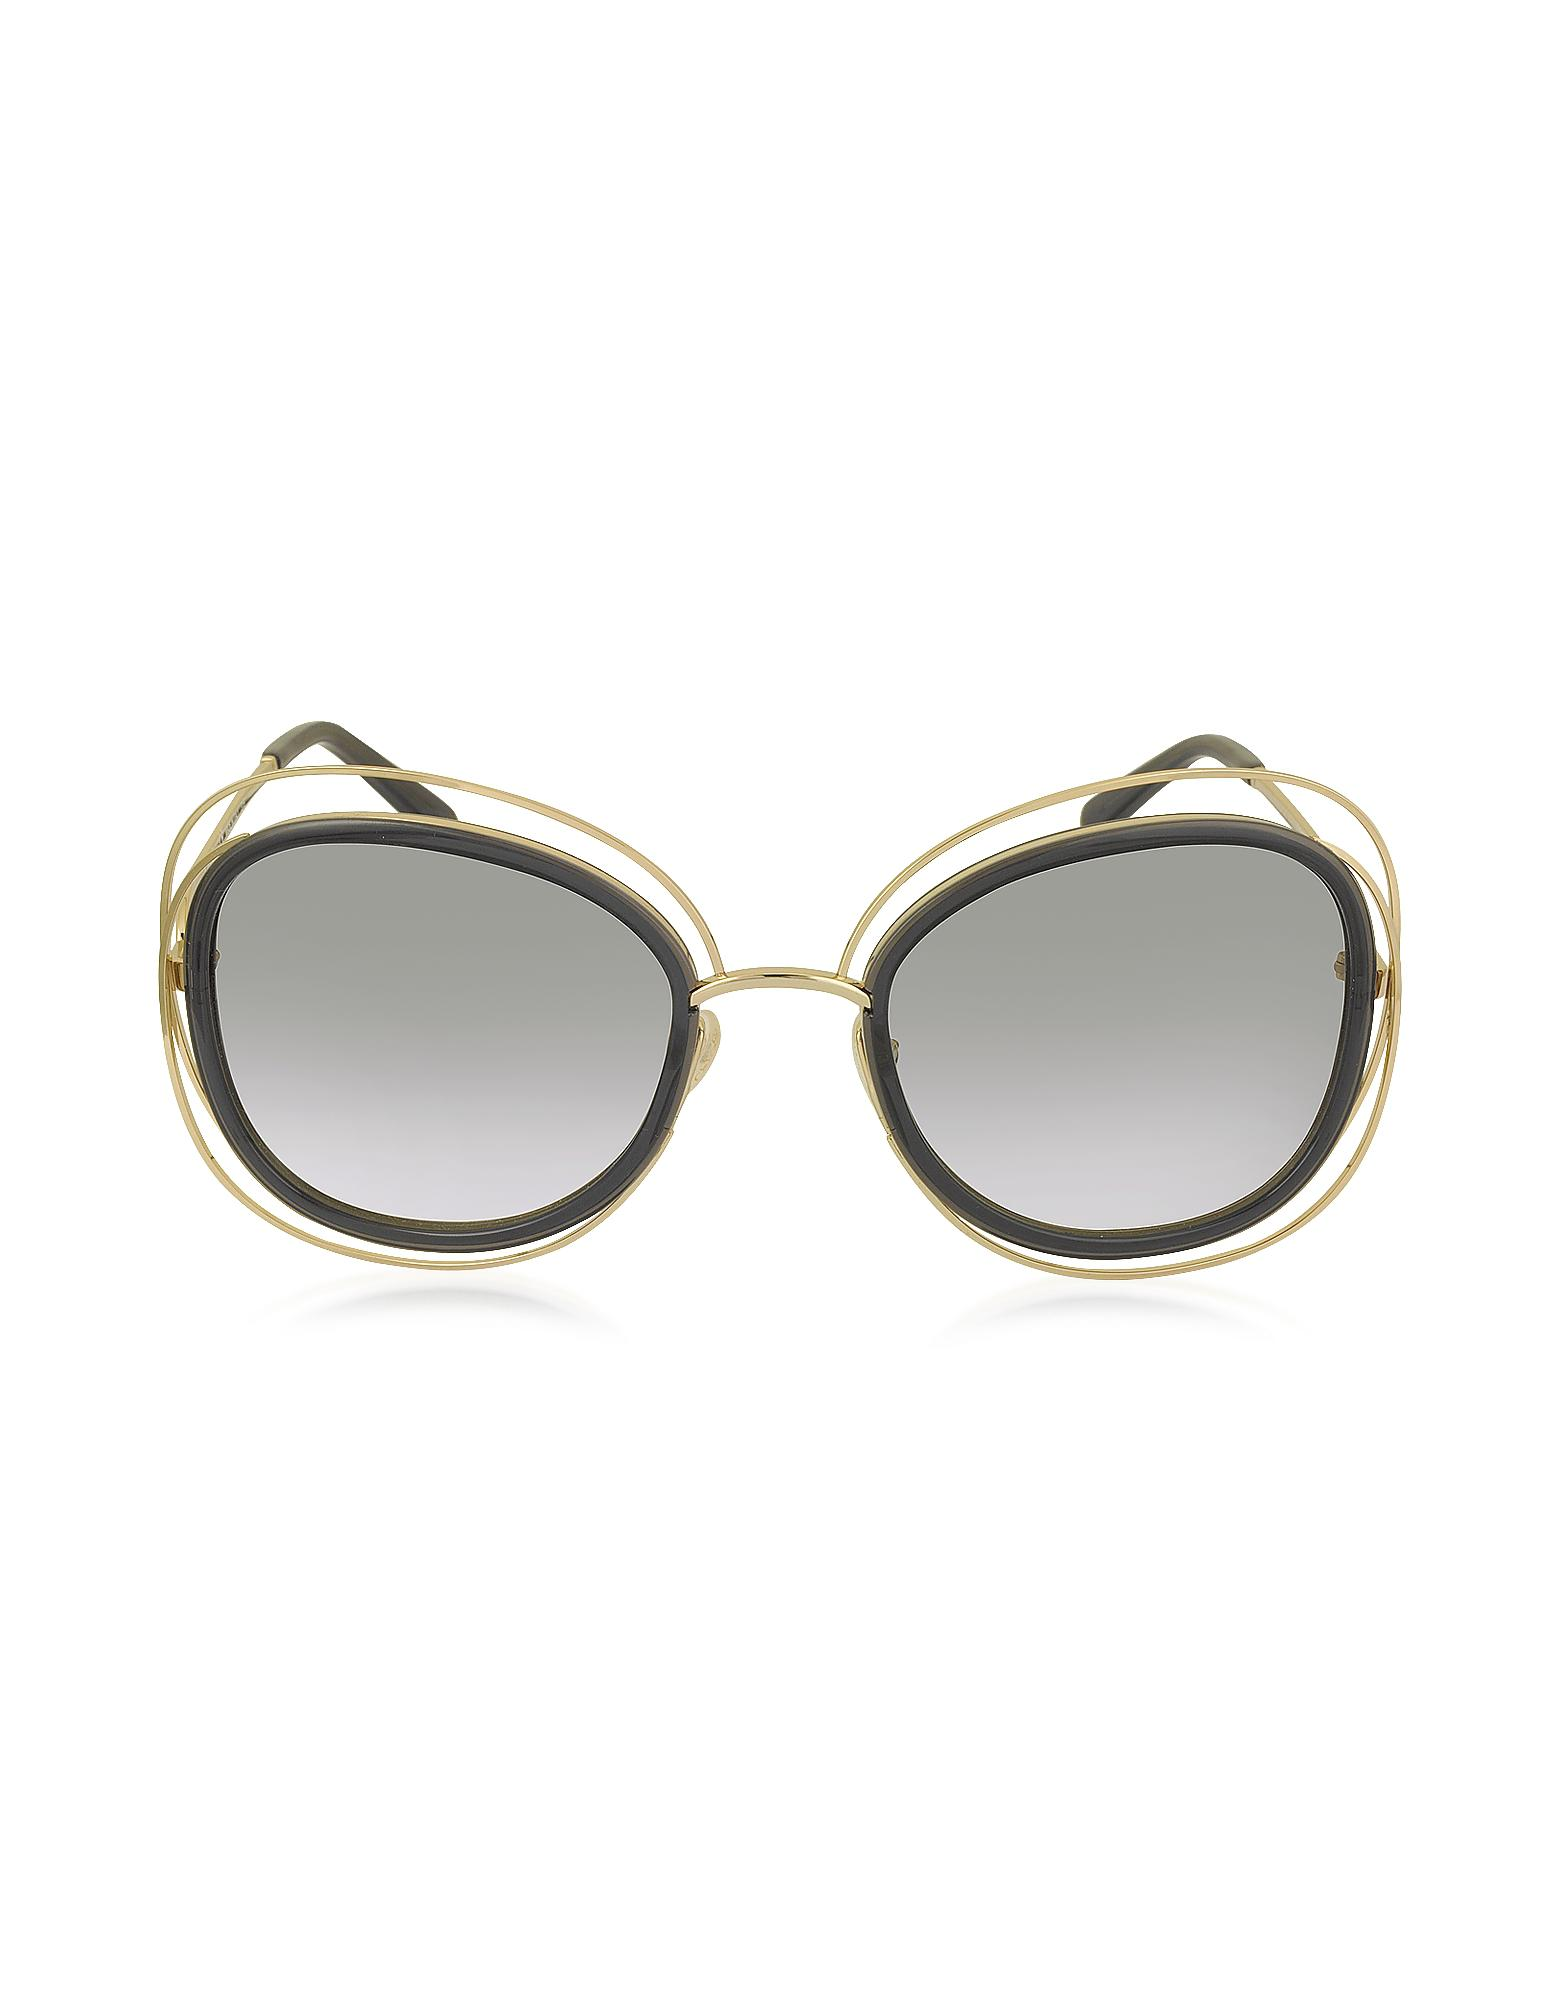 937d7bb9cf99 Chloé Carlina Ce 123s Square Oversized Acetate   Metal Women s ...